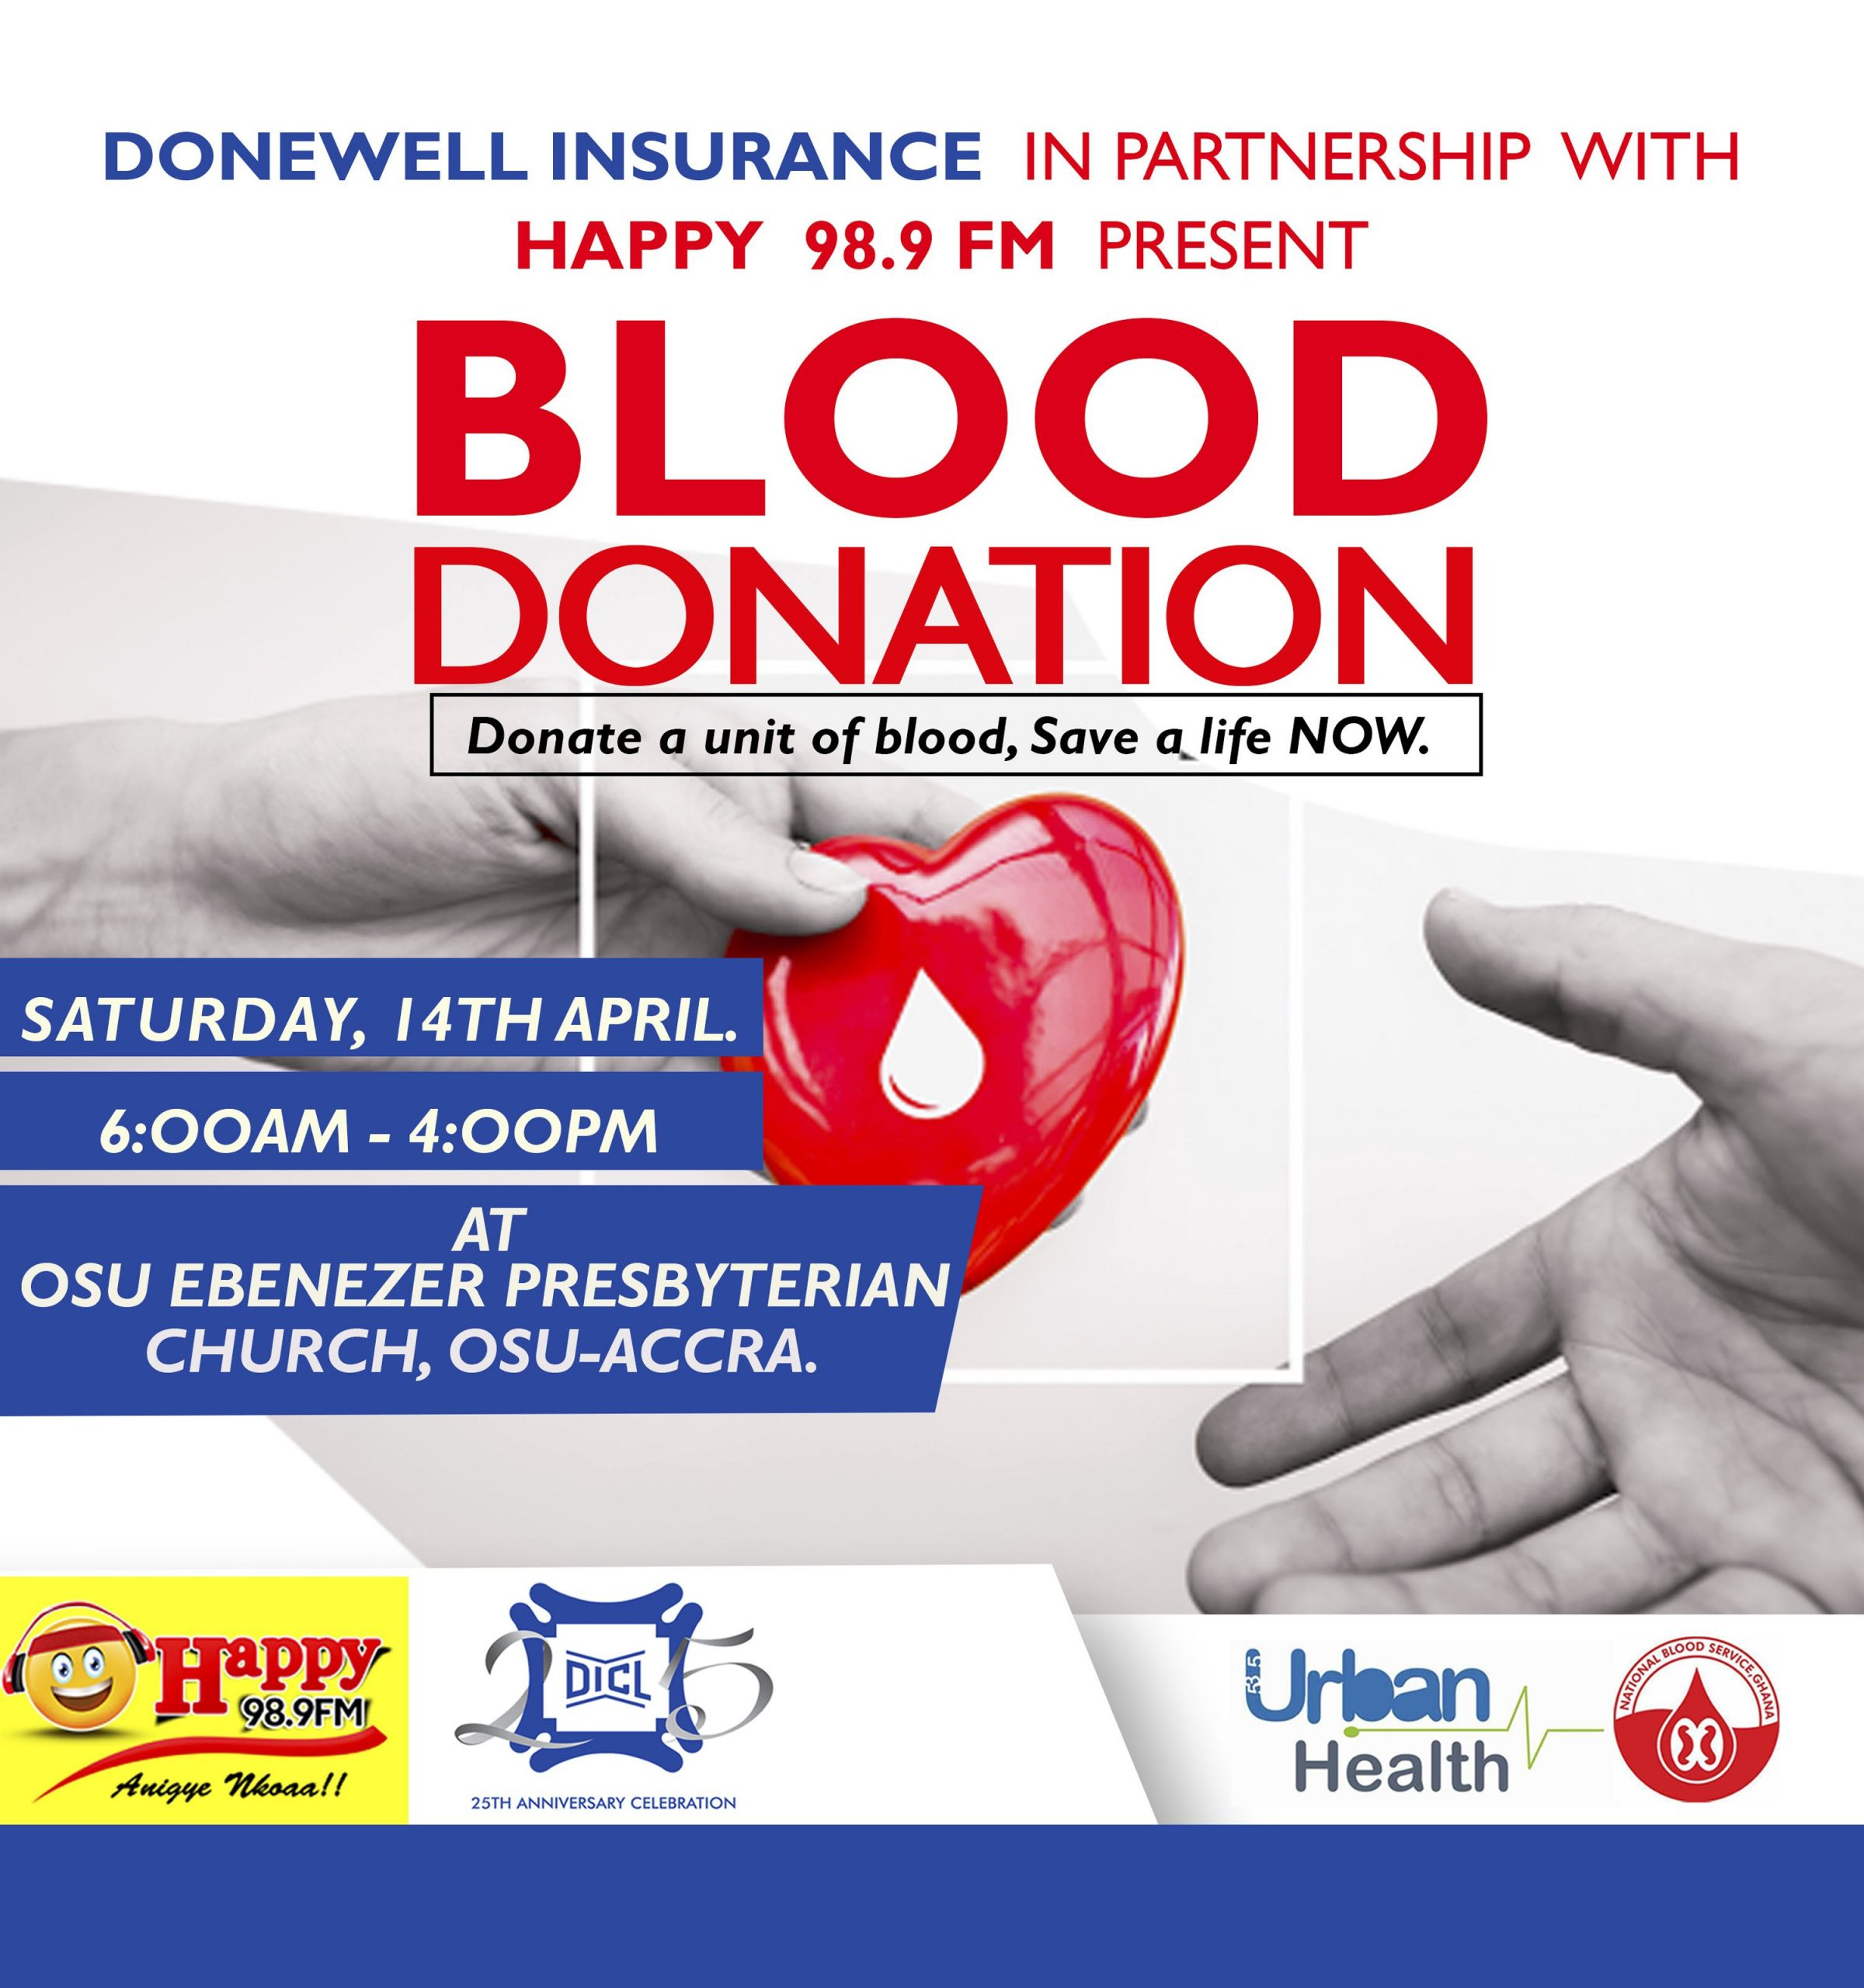 Donewell Insurance, Happy FM Ready to Stock National Blood Bank